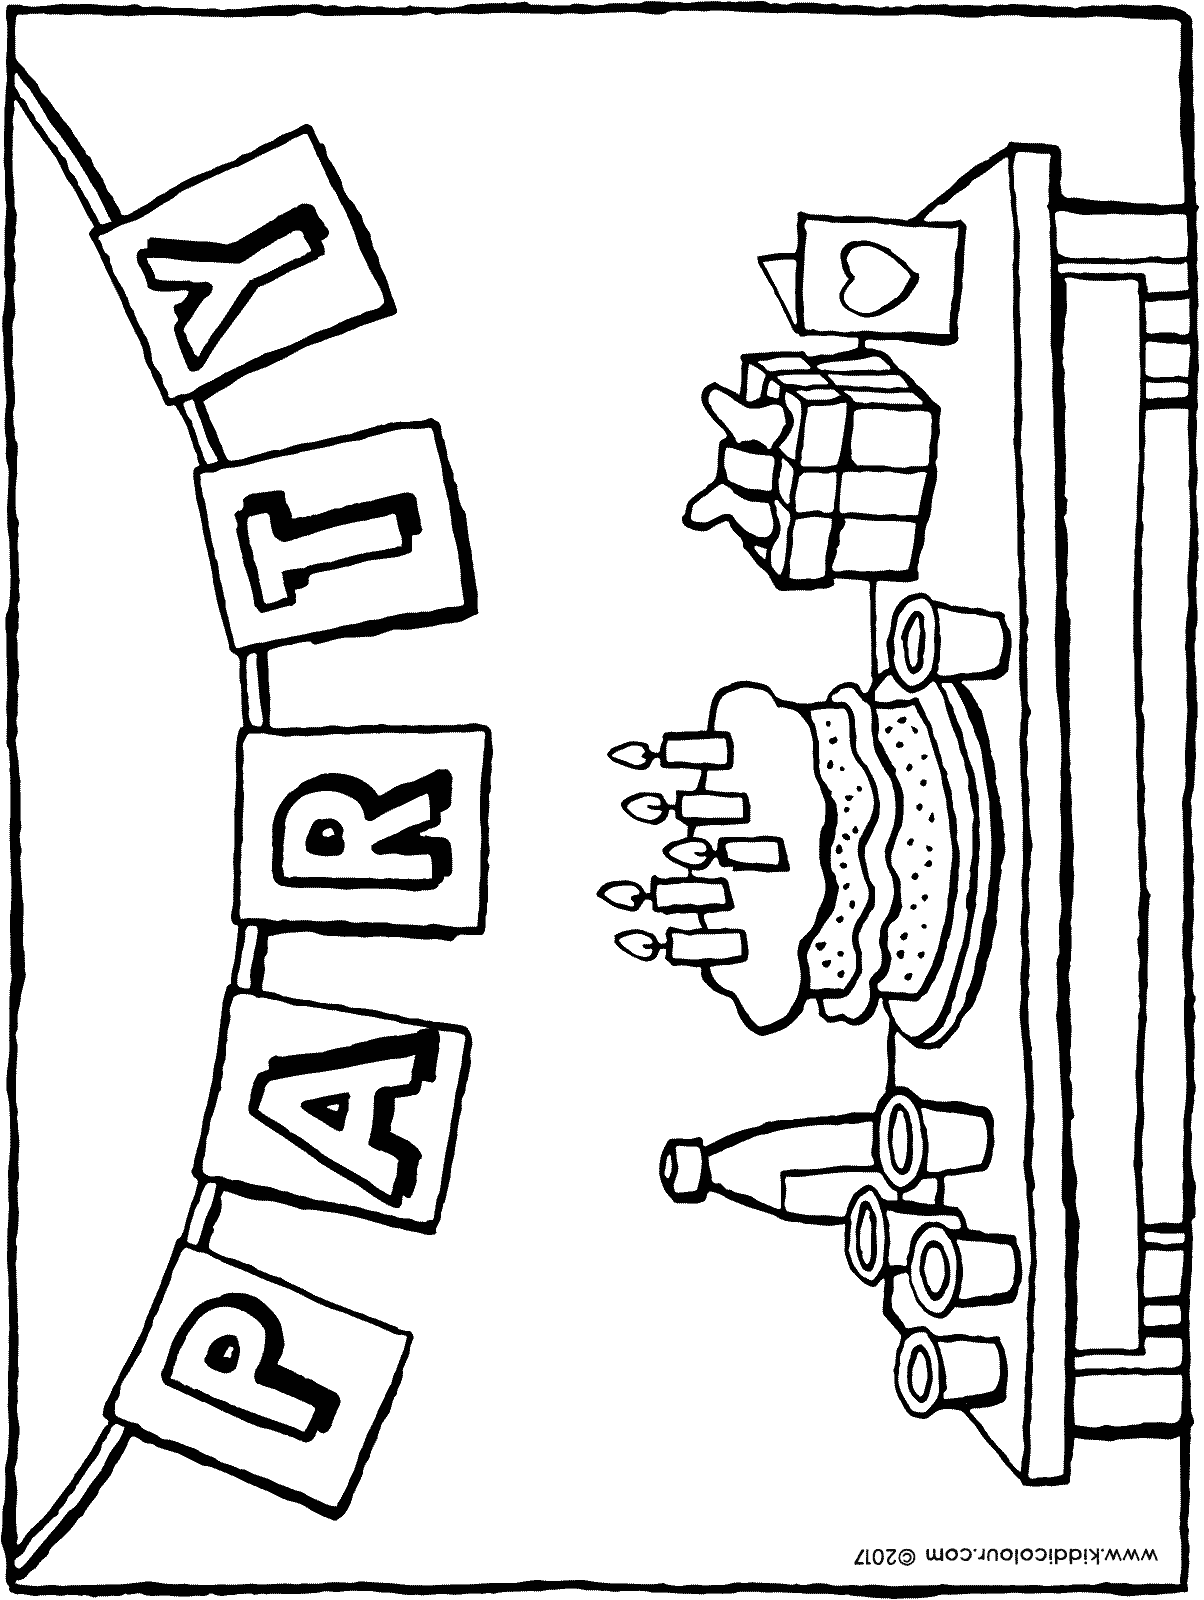 are you coming to my birthday party colouring page drawing picture 01H